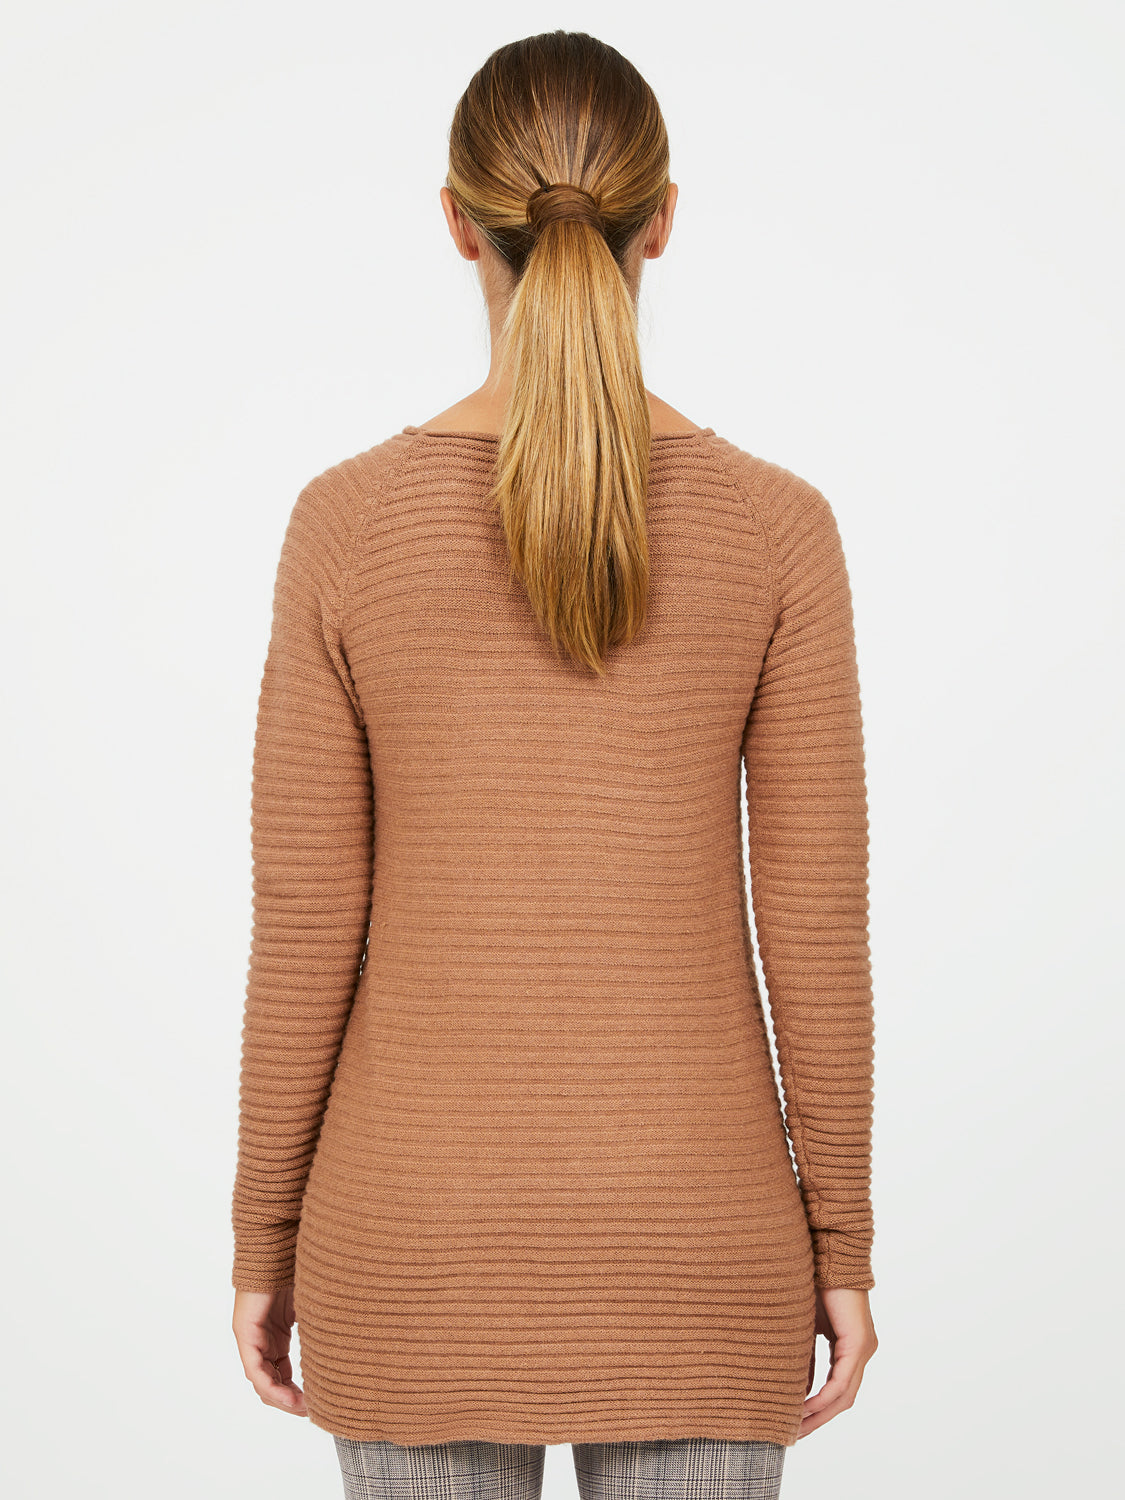 Textured Crew Neck Sweater